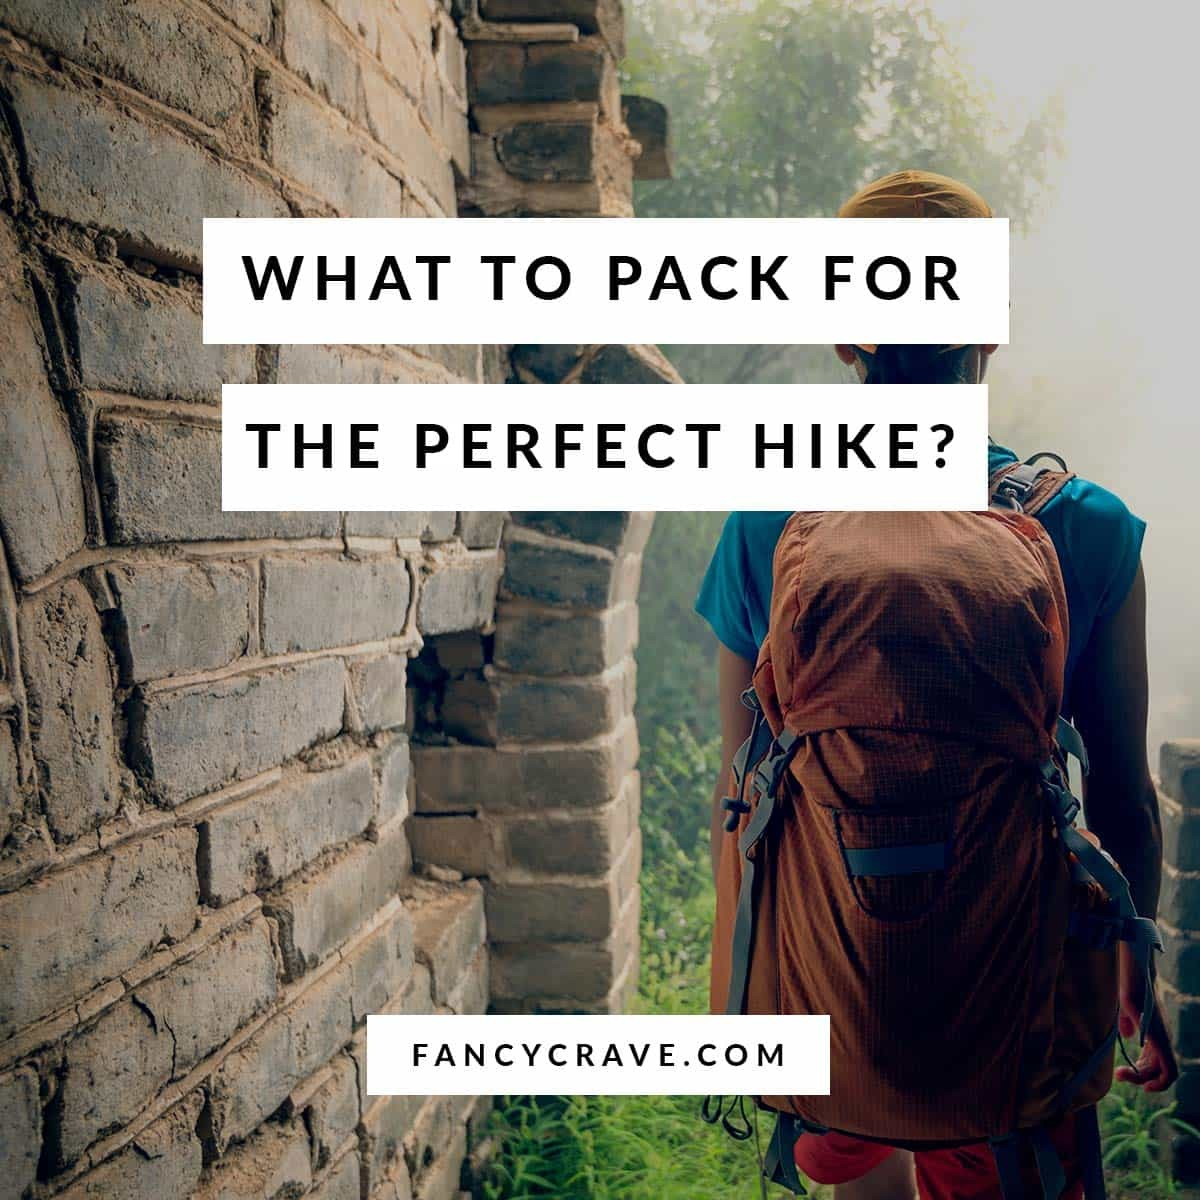 Essential-Items-to-Bring-on-a-Hike-min